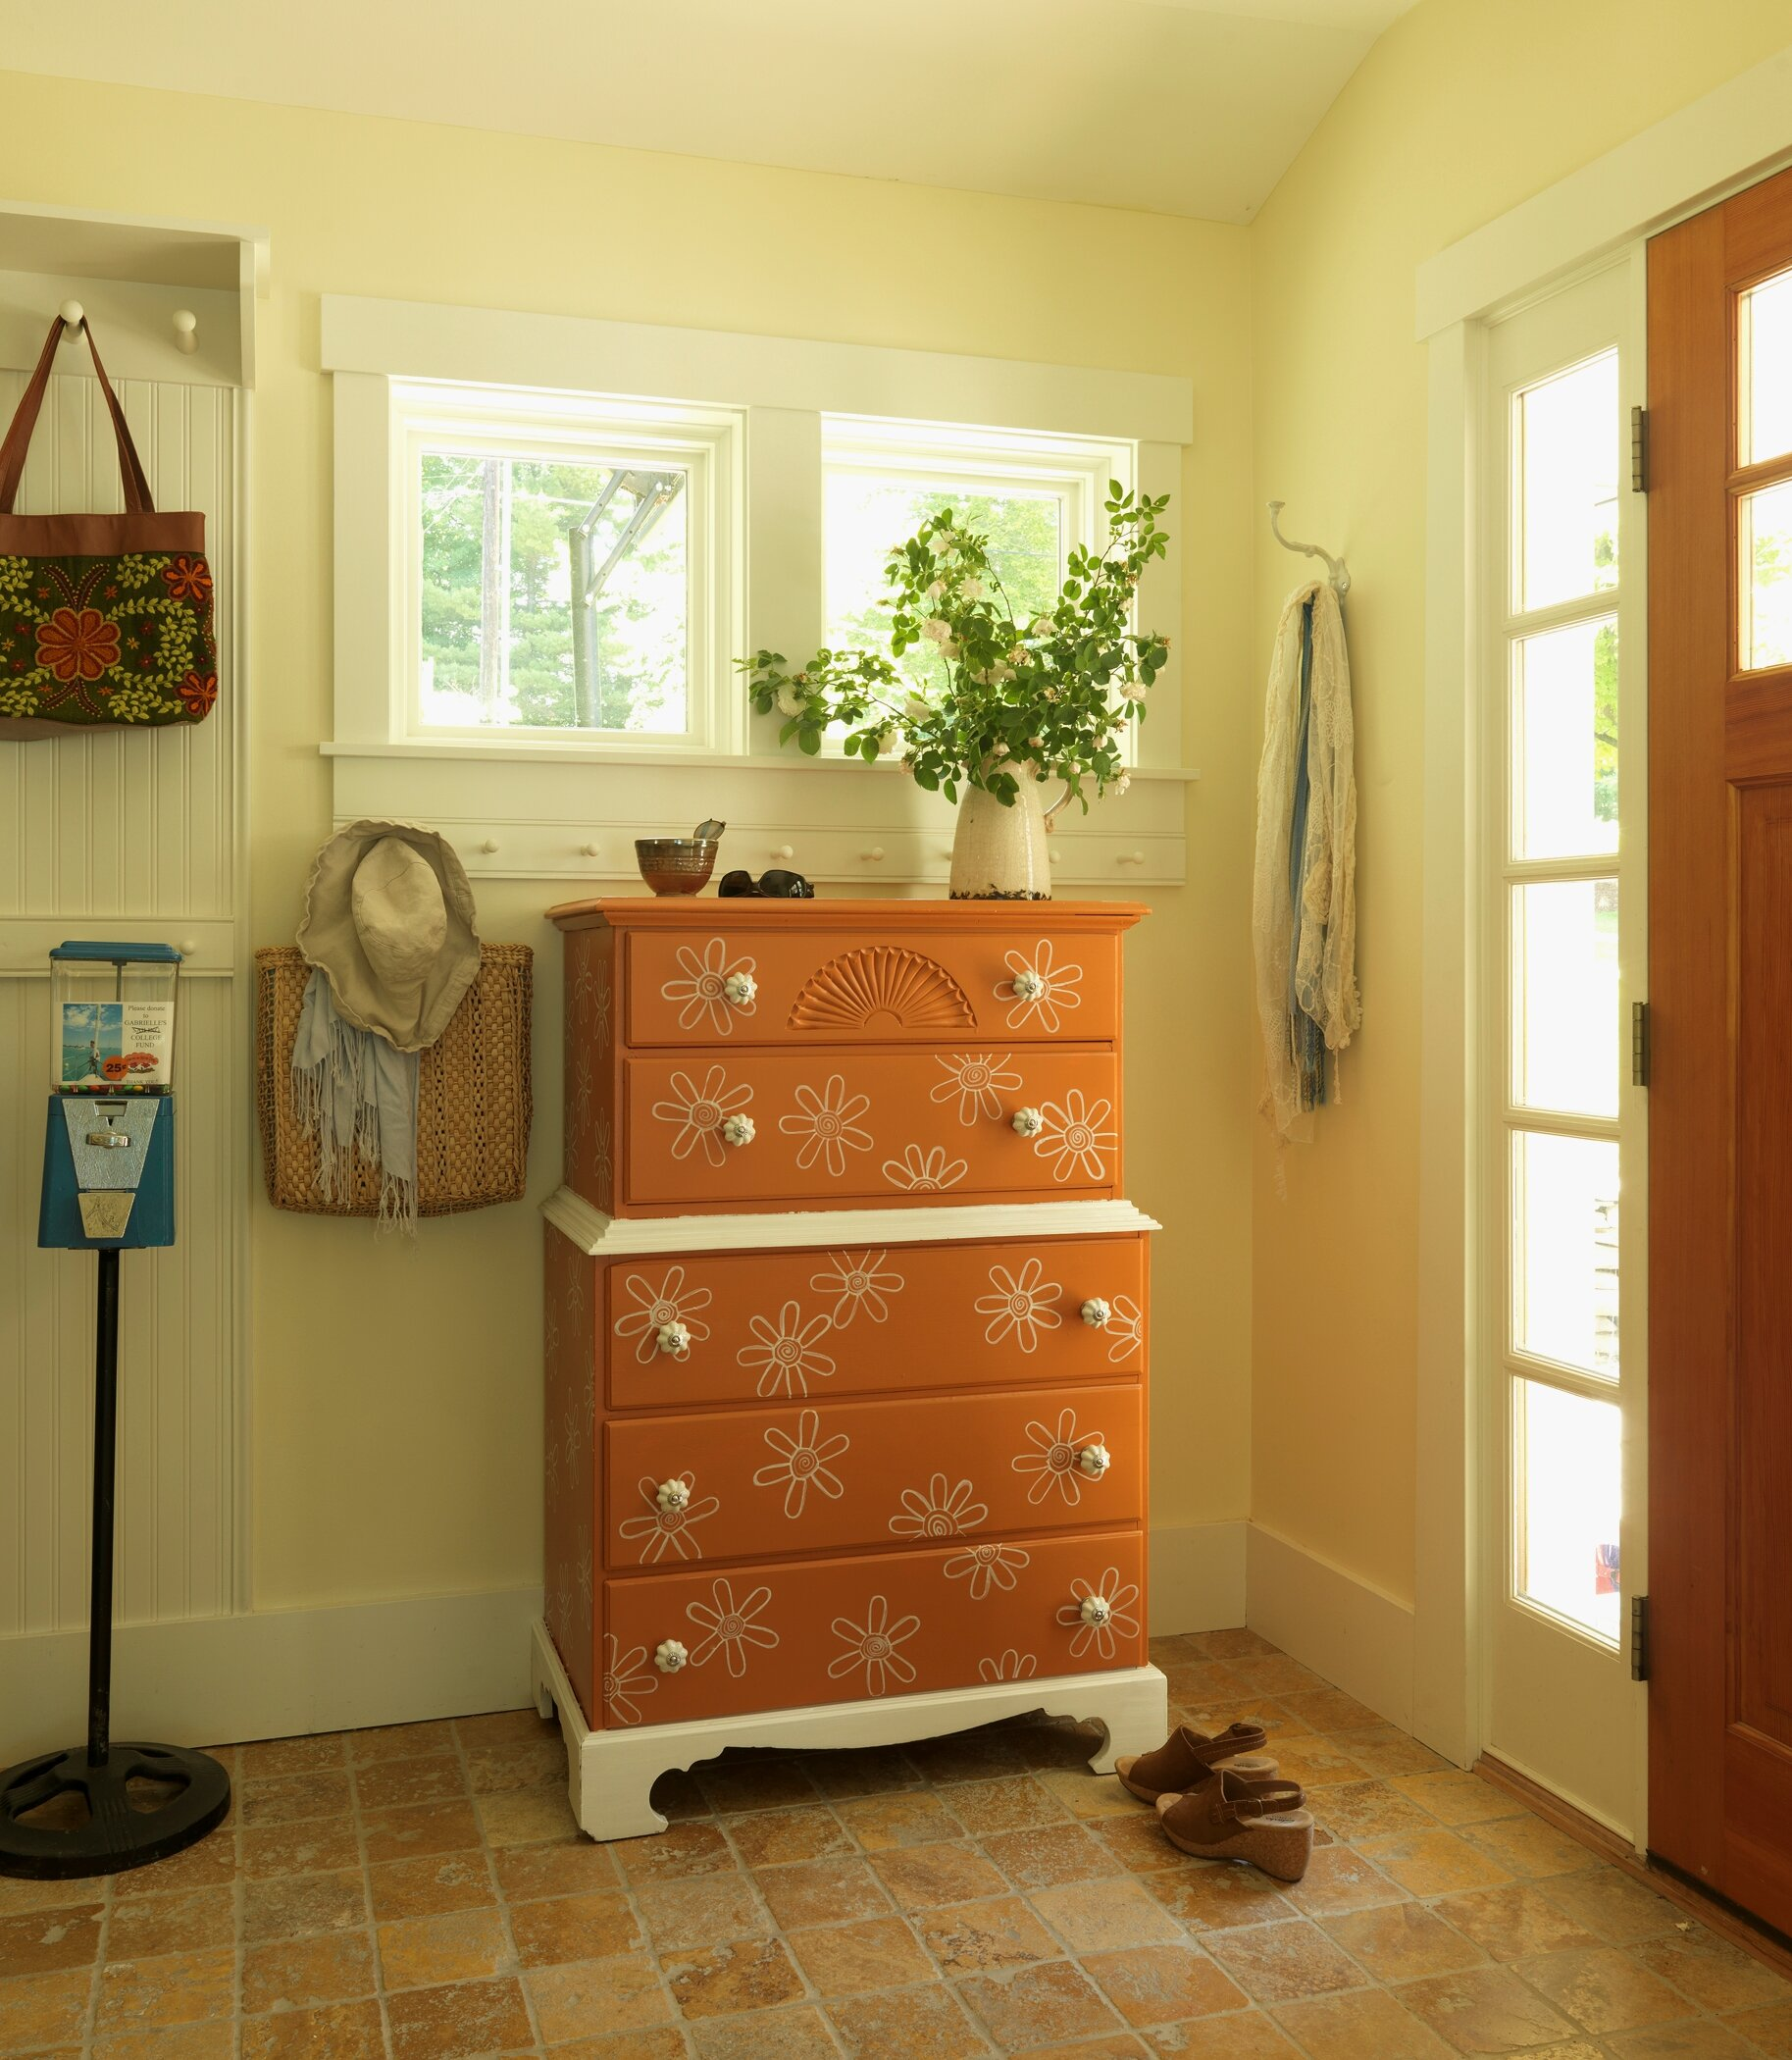 I painted an  old outdated dresser giving it an orange retro look . A DIY NETWORK project.